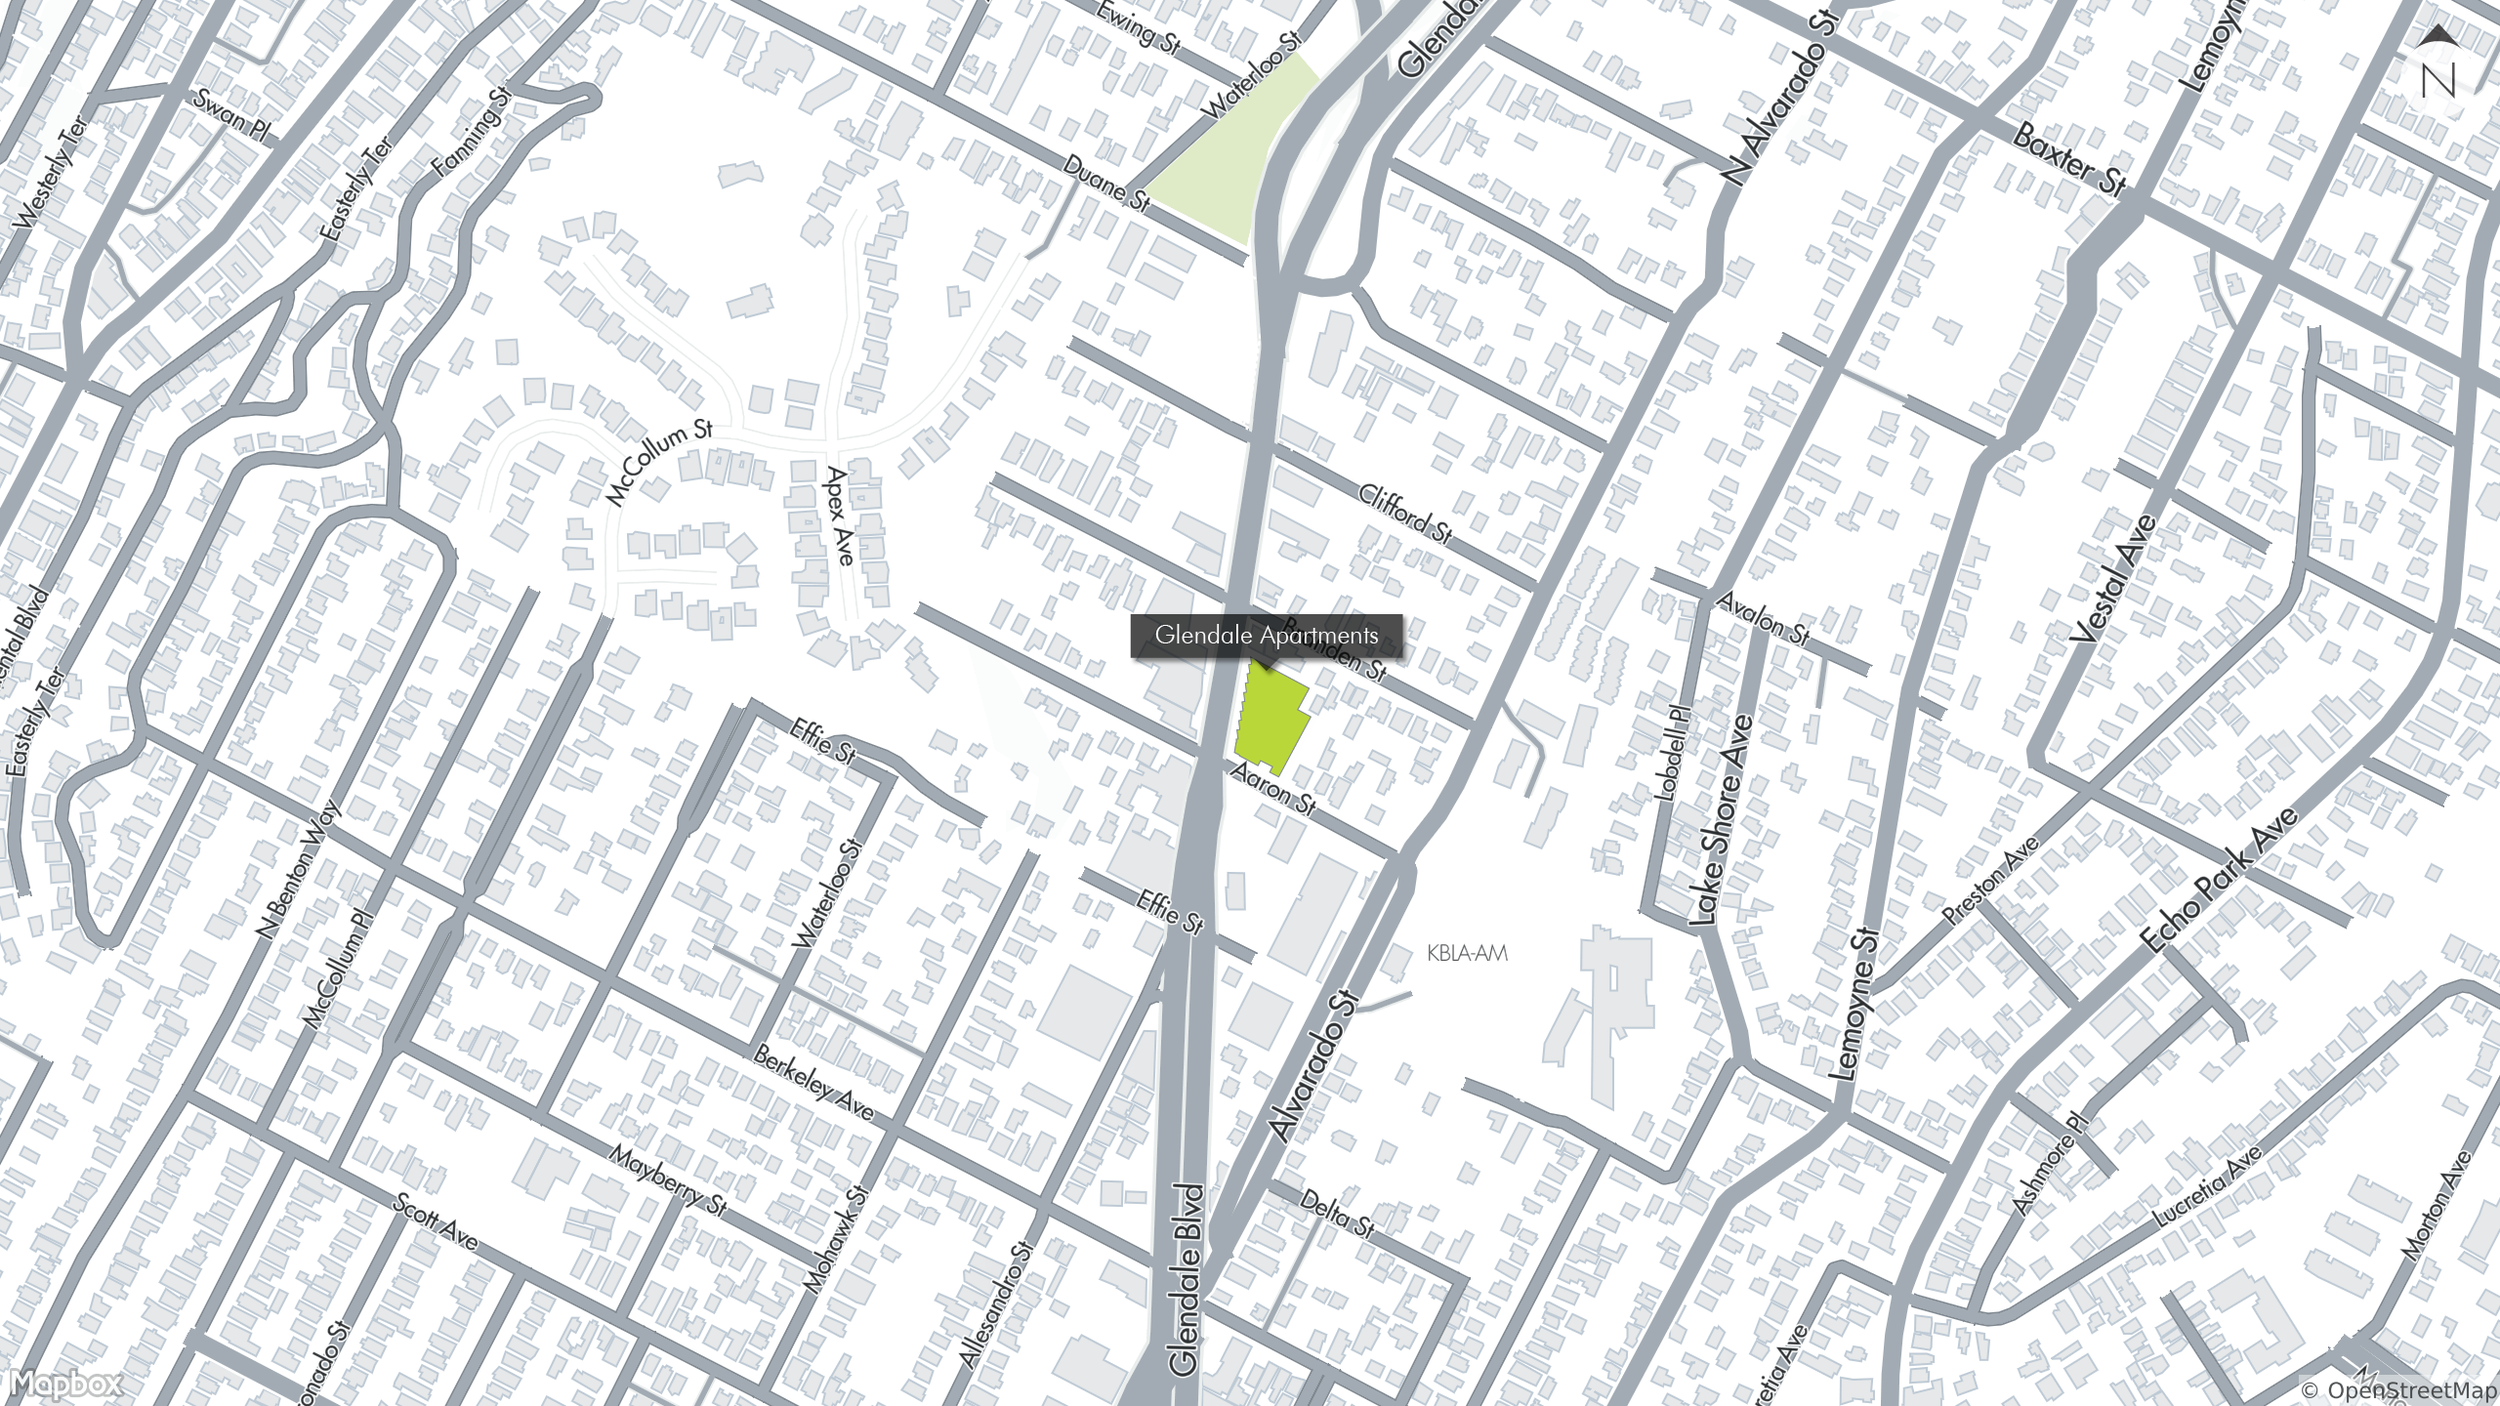 Glendale_Apartments_VicinityMap_WEB.png